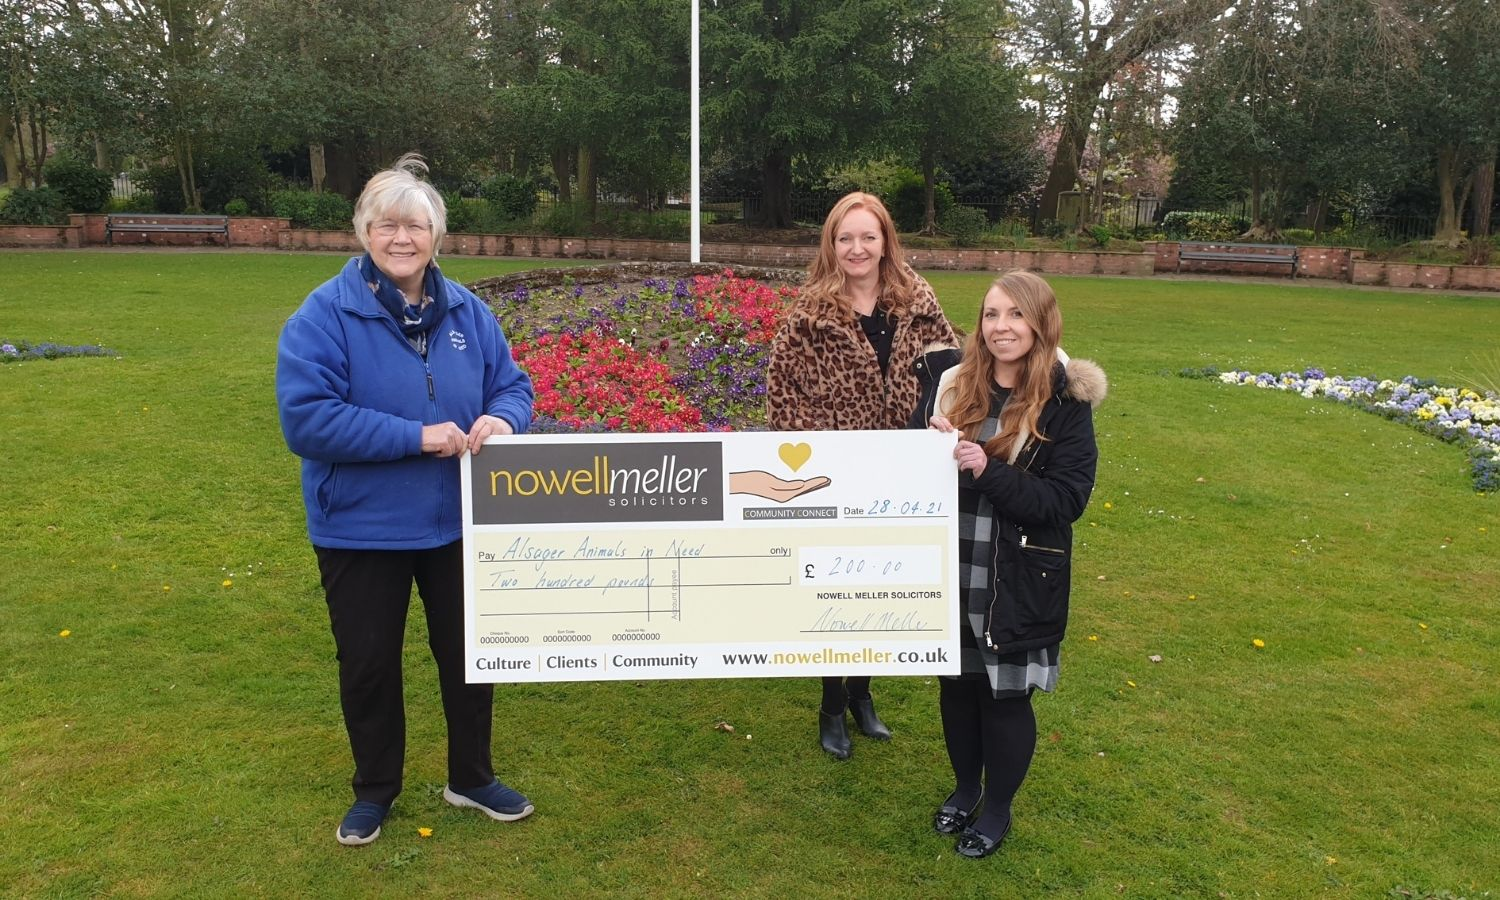 Nowell Meller Support Alsager Animals In Need